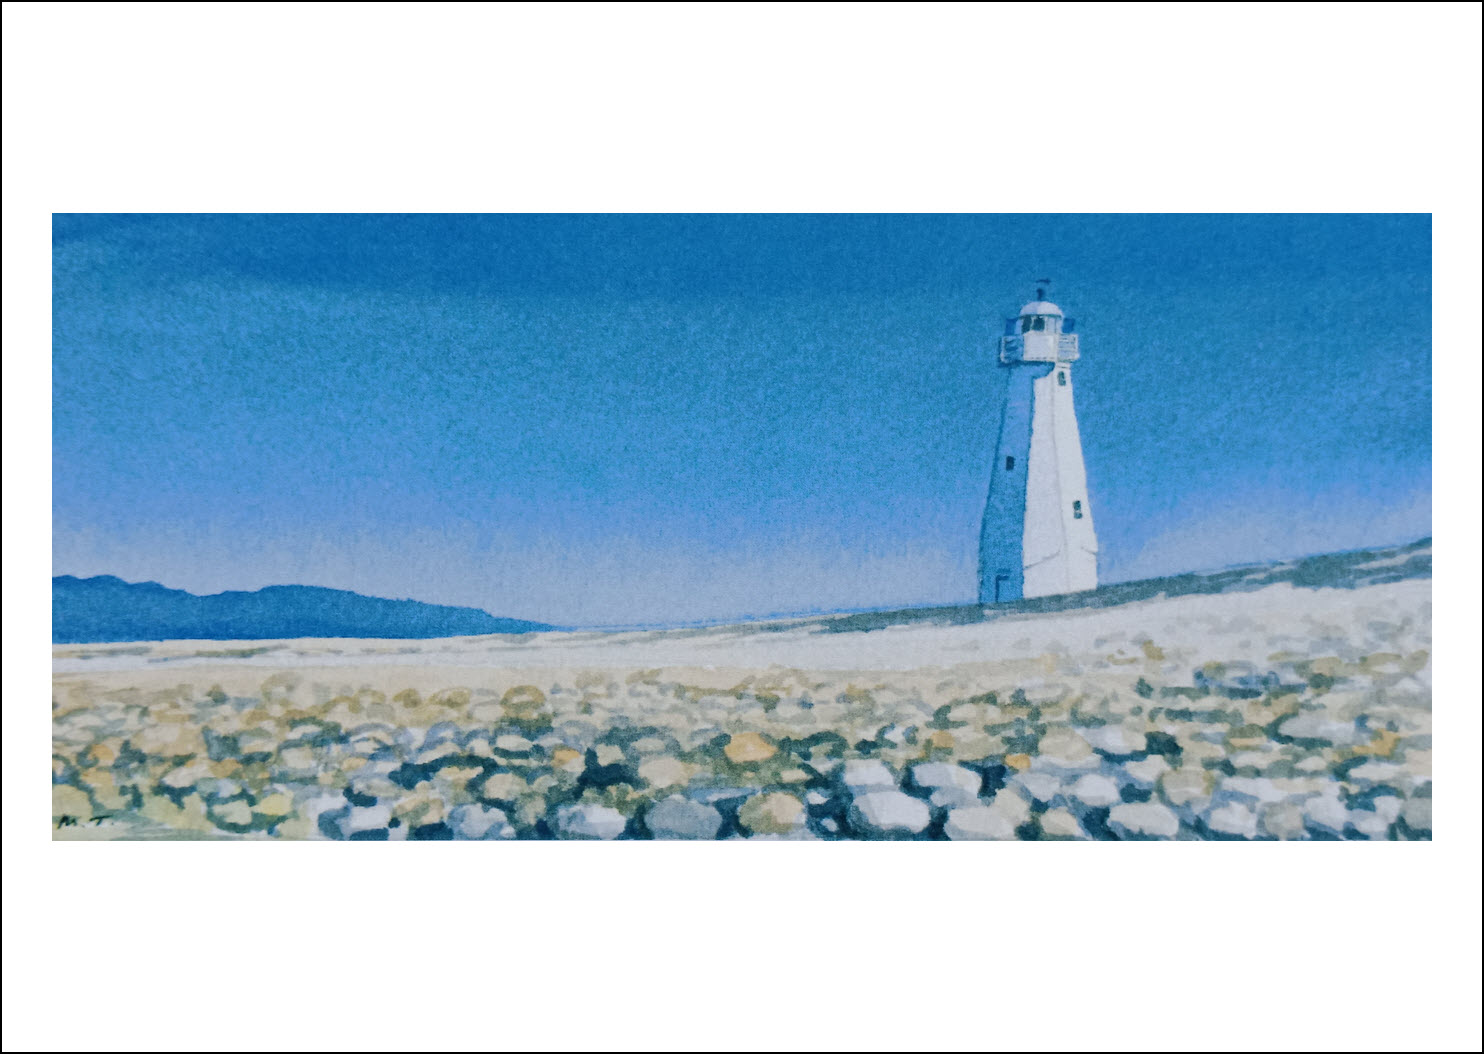 18. The Lighthouse – Nelson